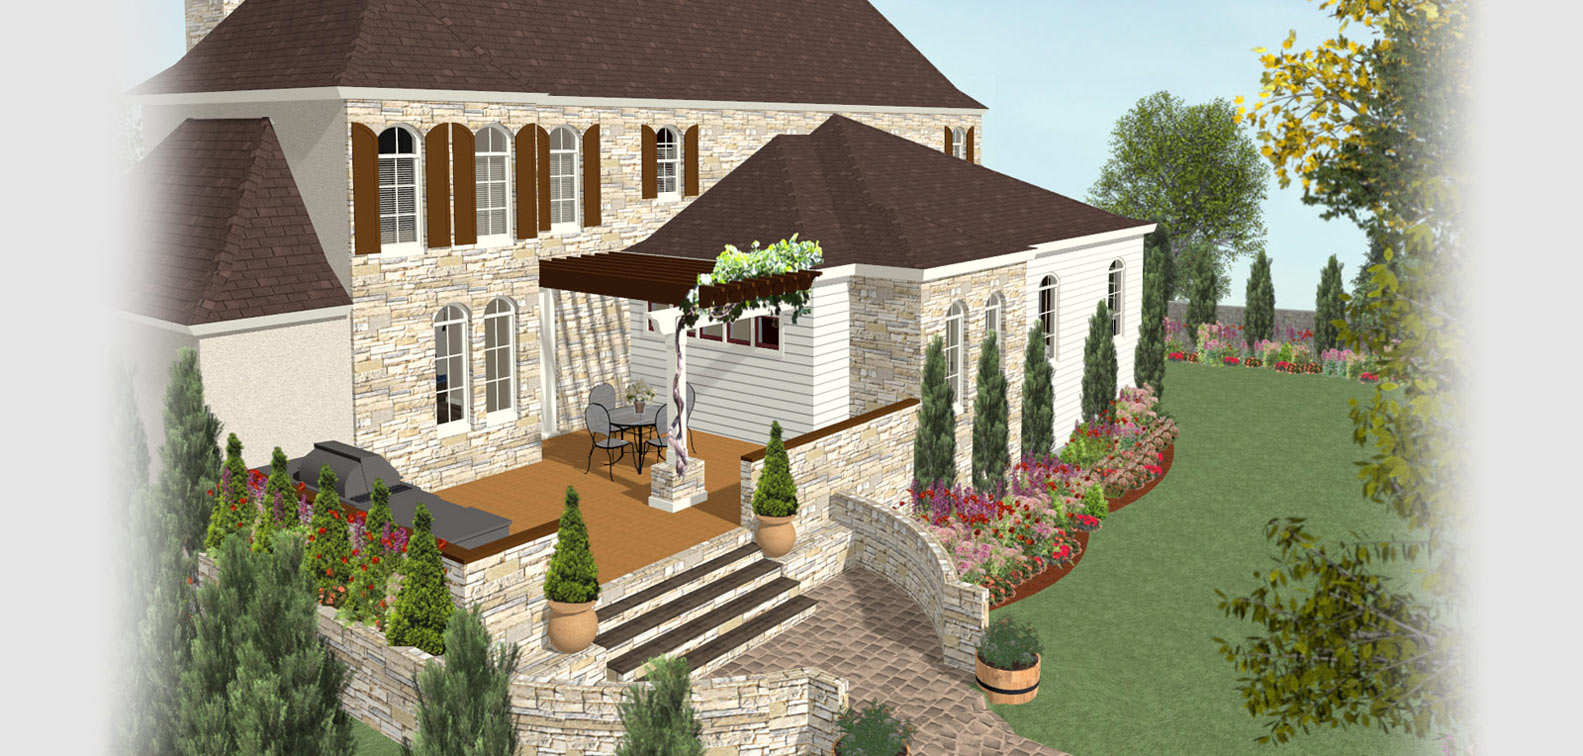 Home designer software for deck and landscape software projects malvernweather Image collections